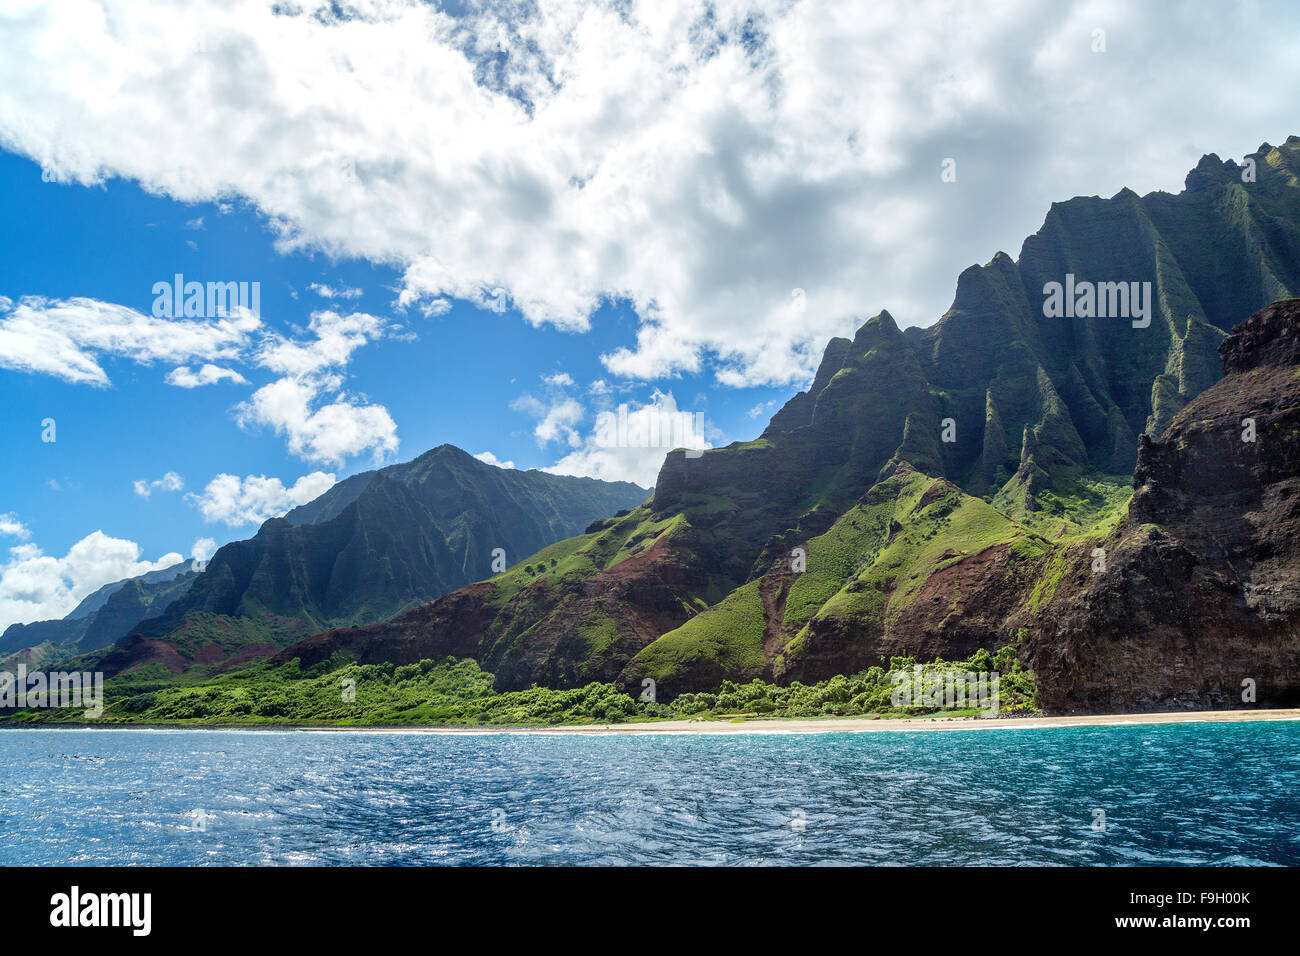 Kalalau beach on Kauai island, Hawaii - Stock Image